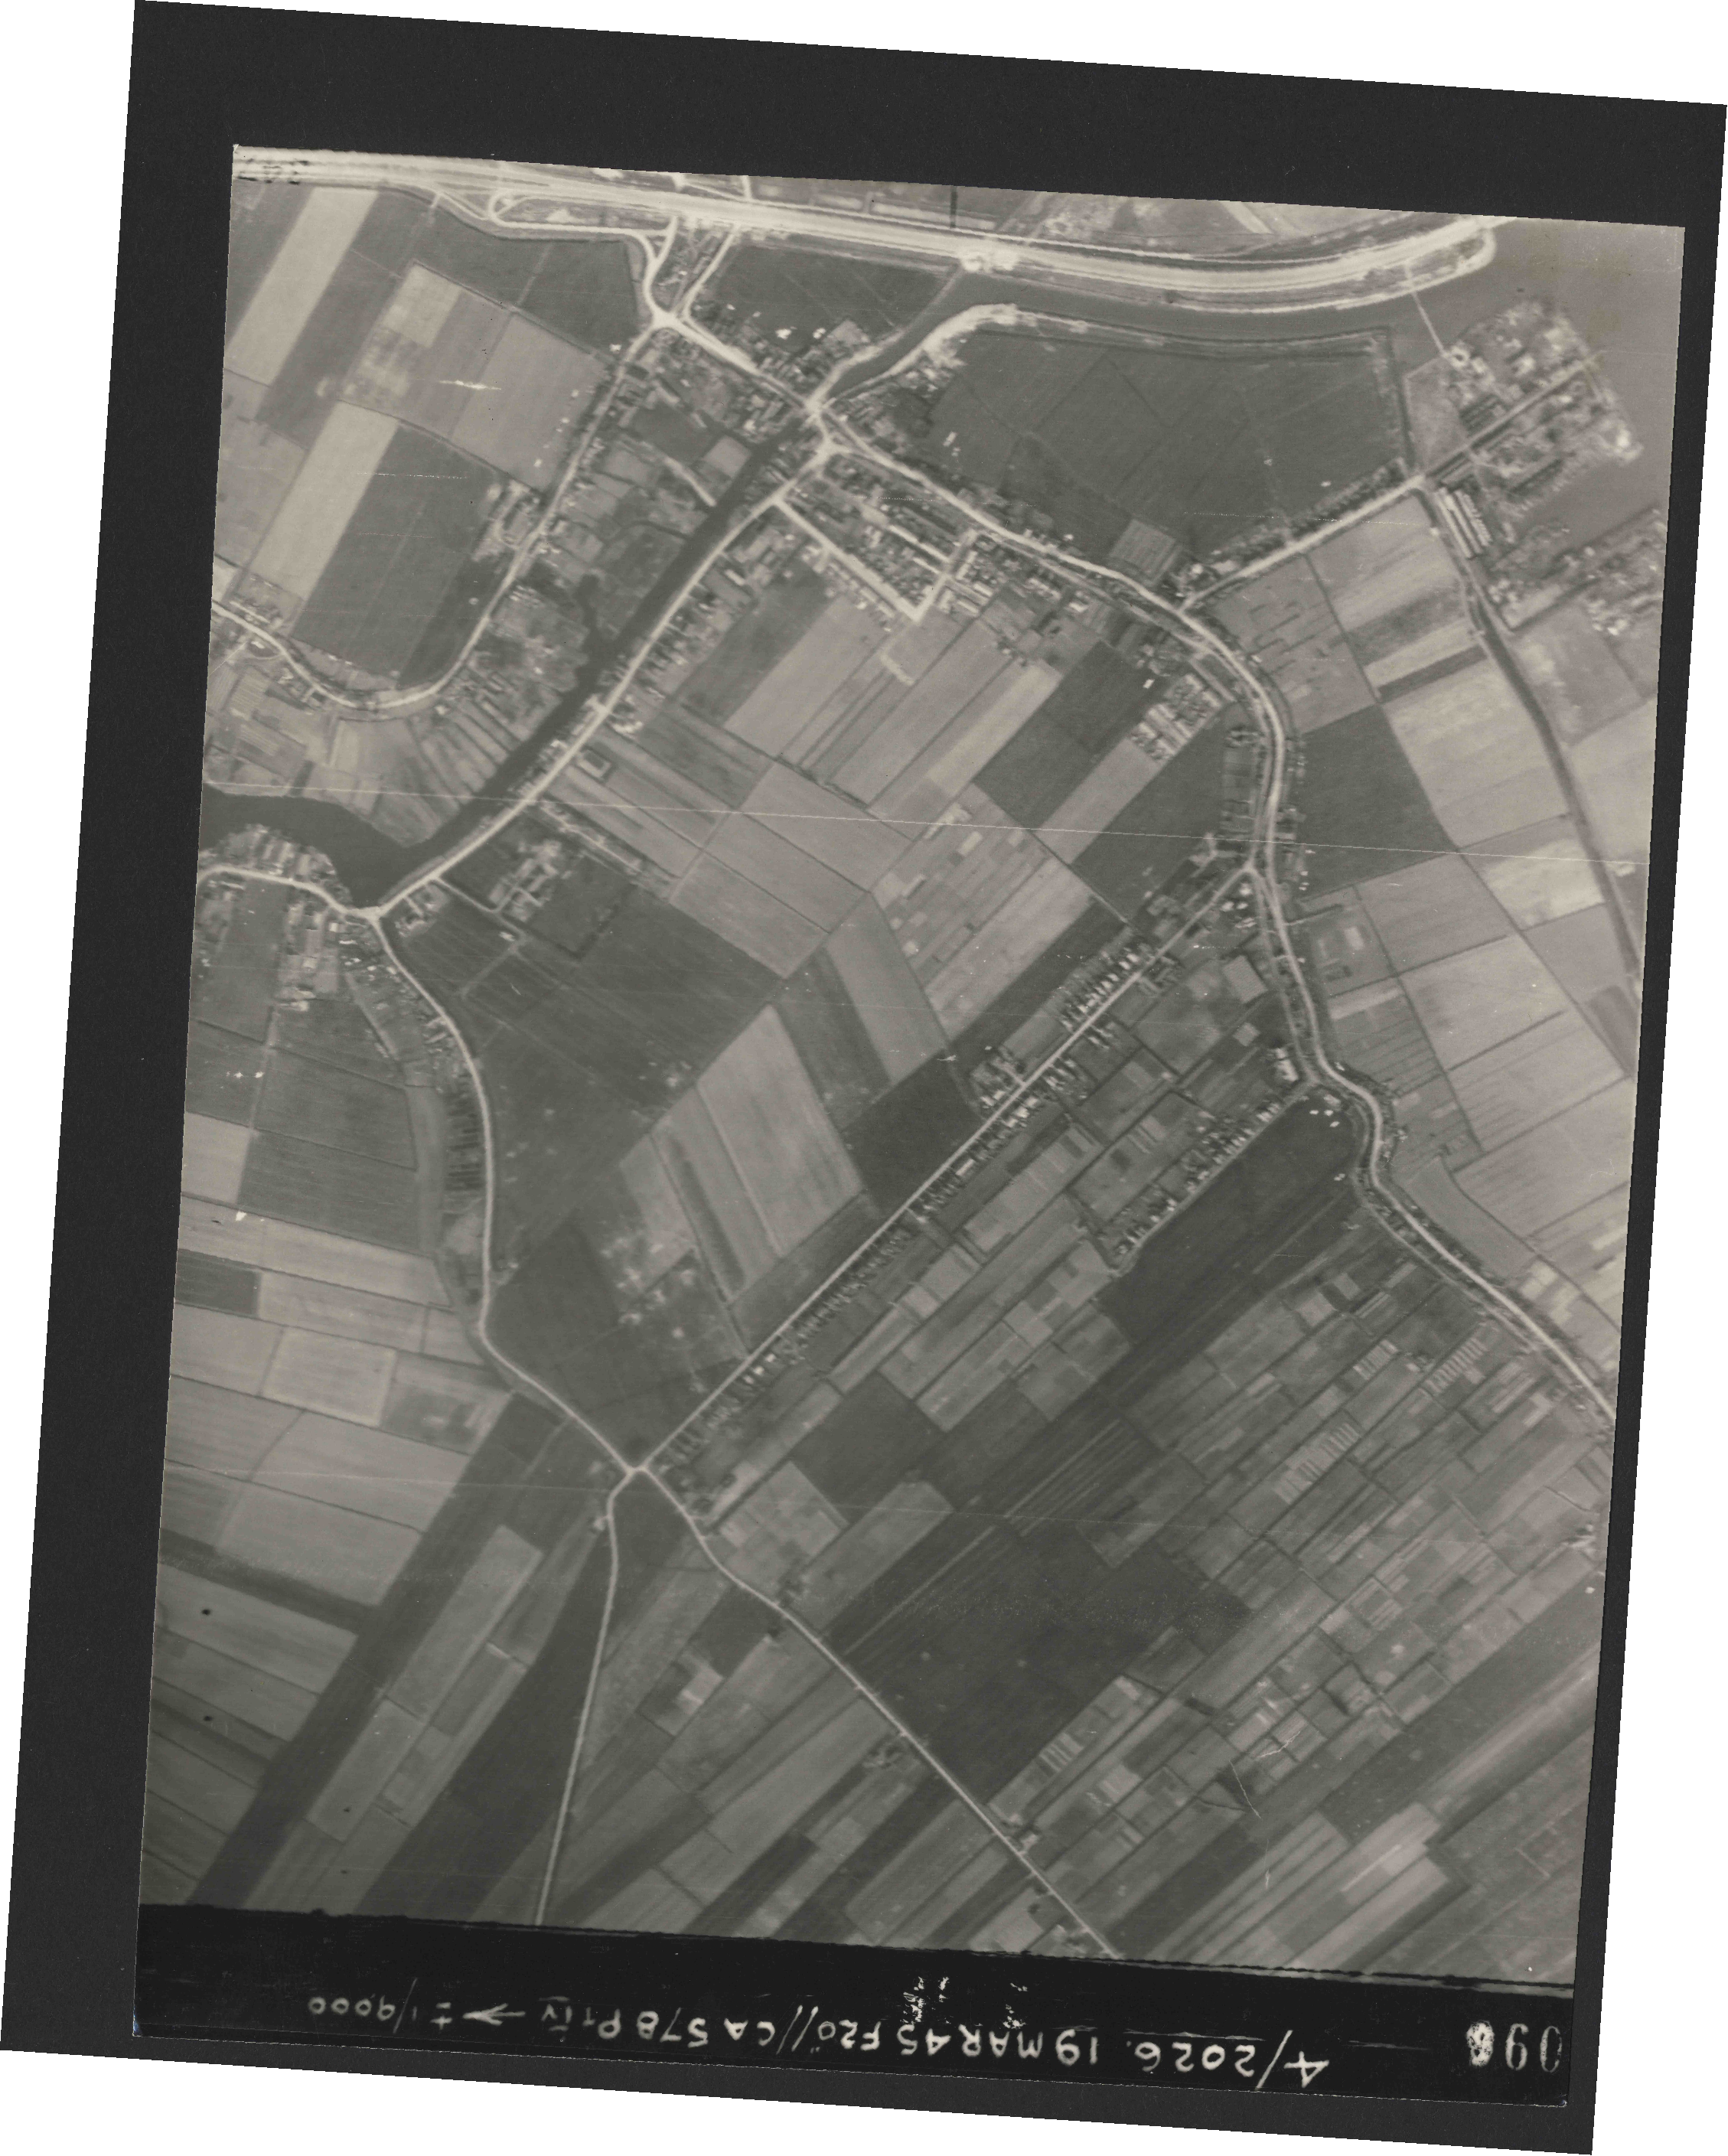 Collection RAF aerial photos 1940-1945 - flight 012, run 03, photo 3096